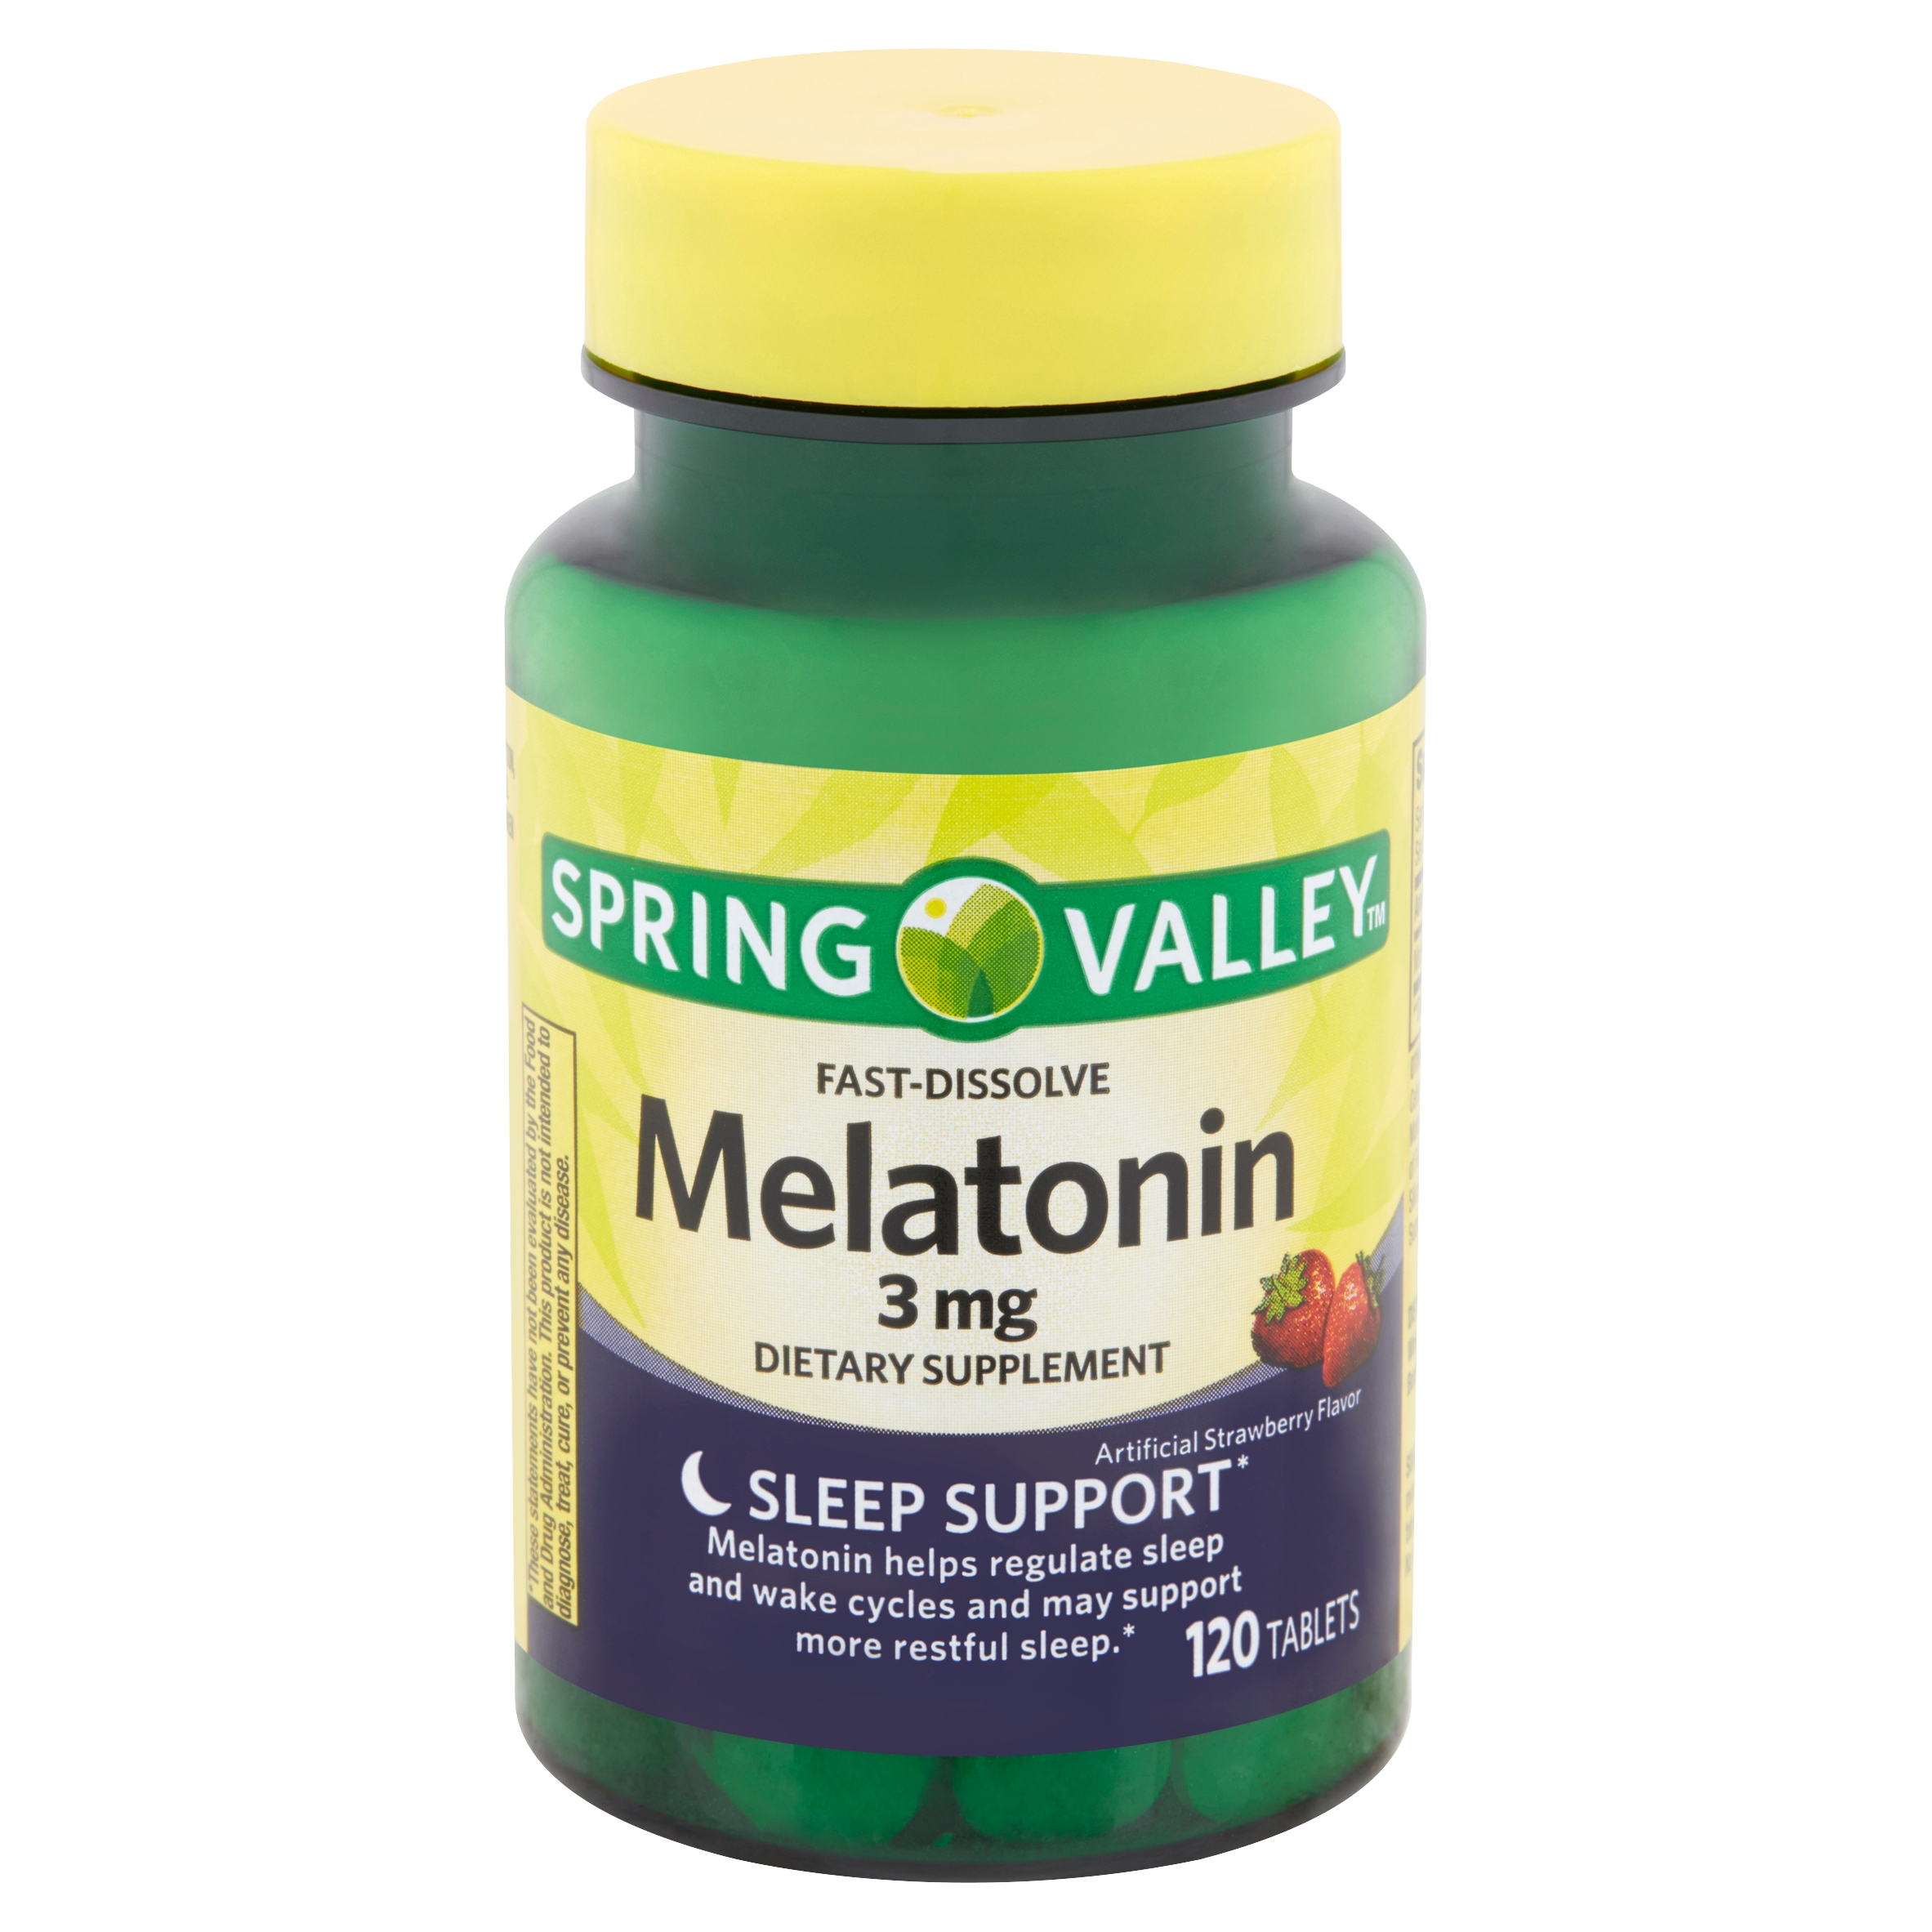 Spring Valley Fast-Dissolve Melatonin Tablets, 3 mg, 120 count